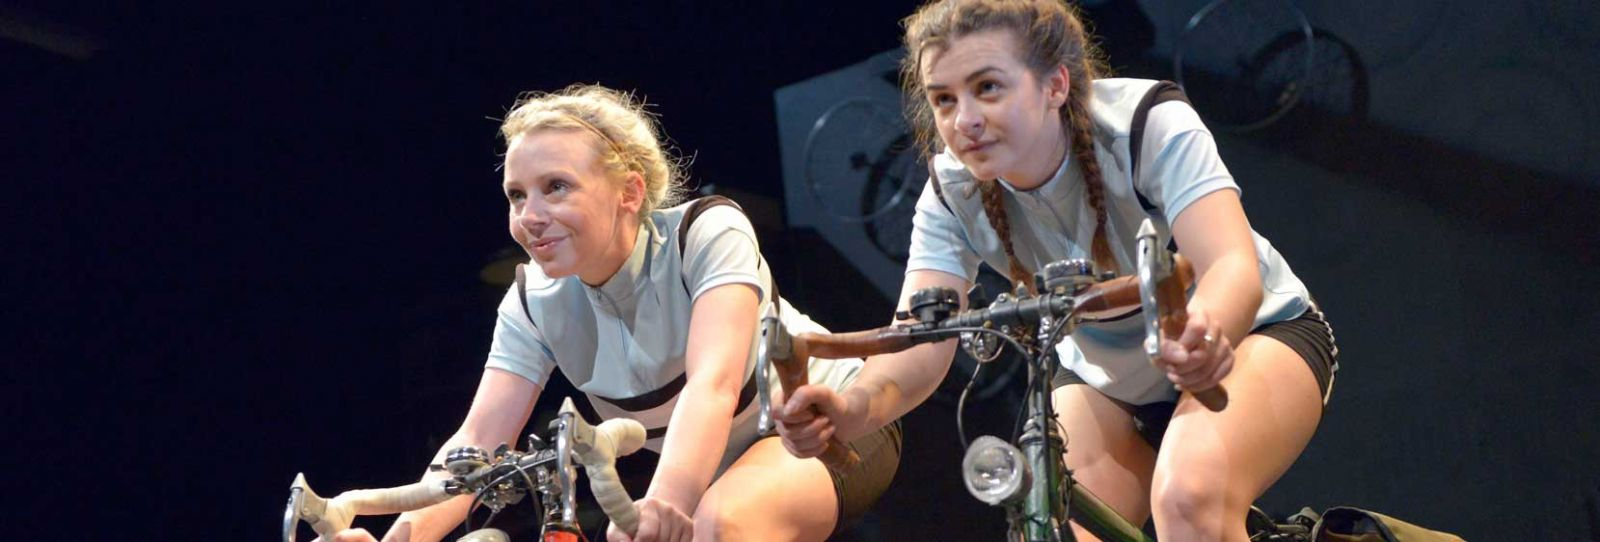 Maxine Peake's Beryl comes to the Rose